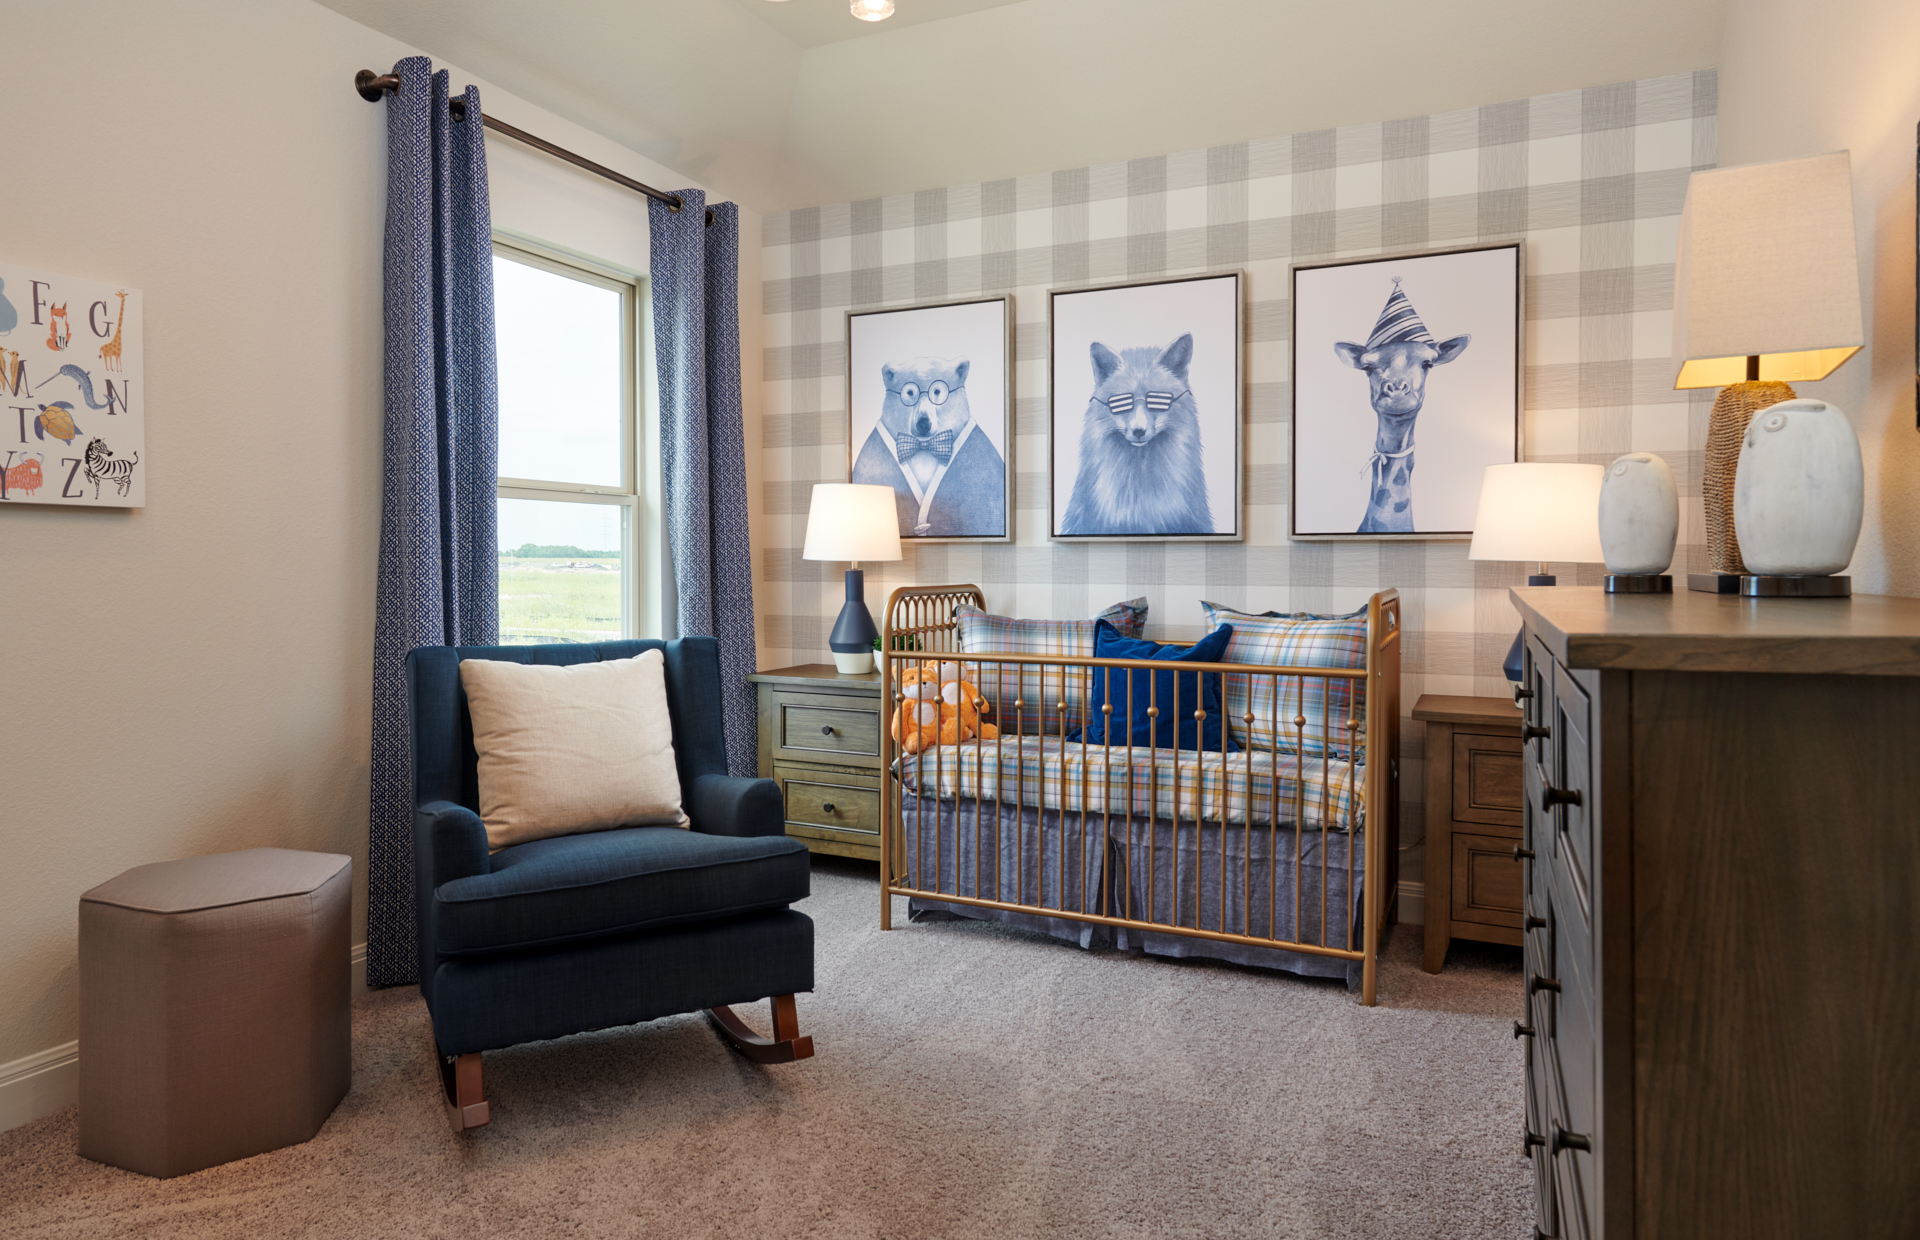 Carmel by Pulte Homes image 5